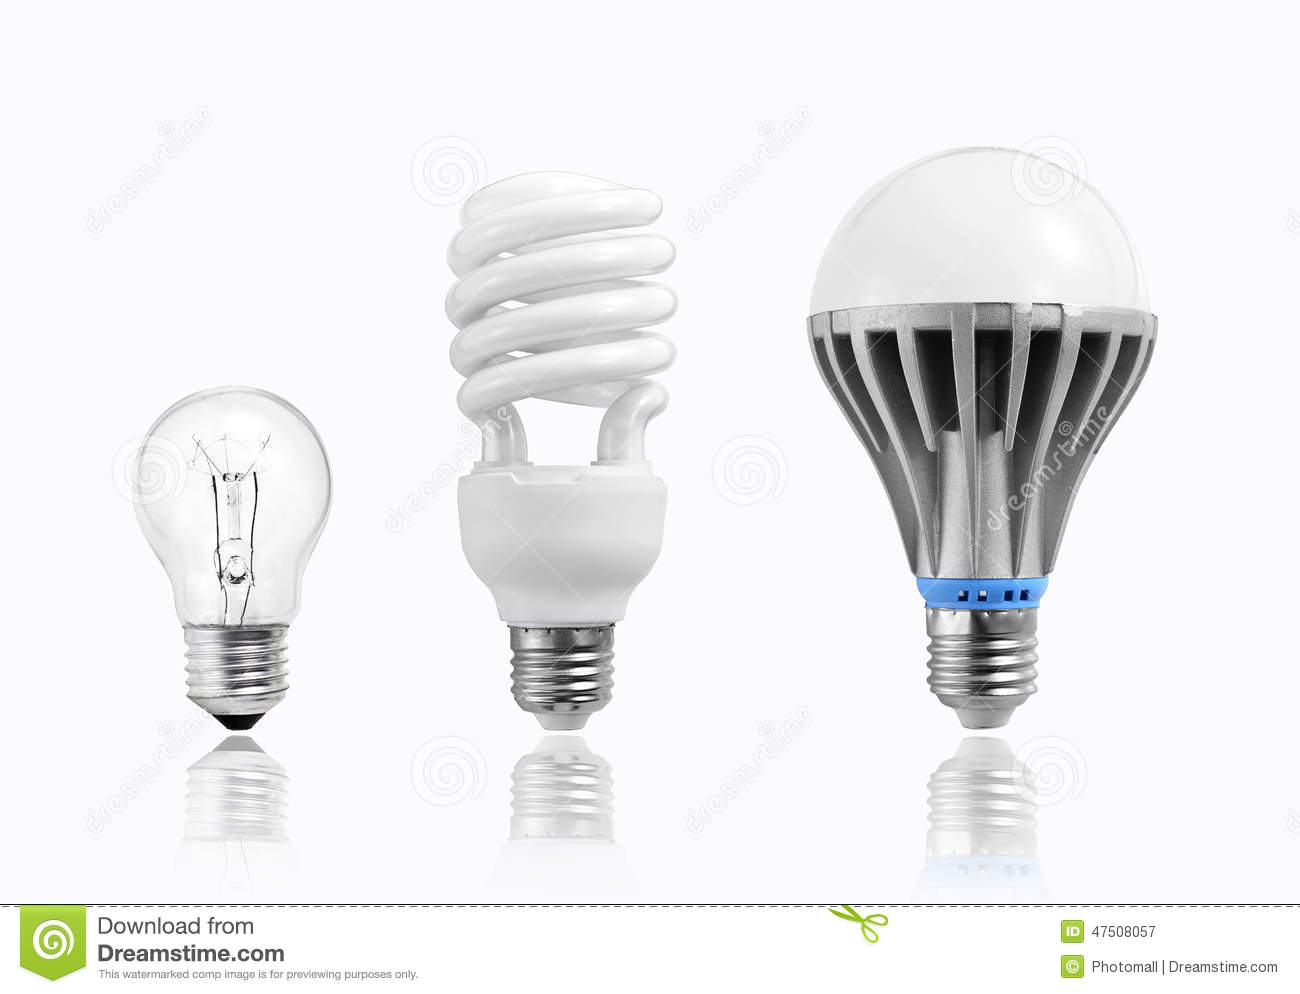 Energy Saving Lighting Led Lamp Led Light Led Bulb Tungsten Bulb Incandescent Bulb Fluorescent